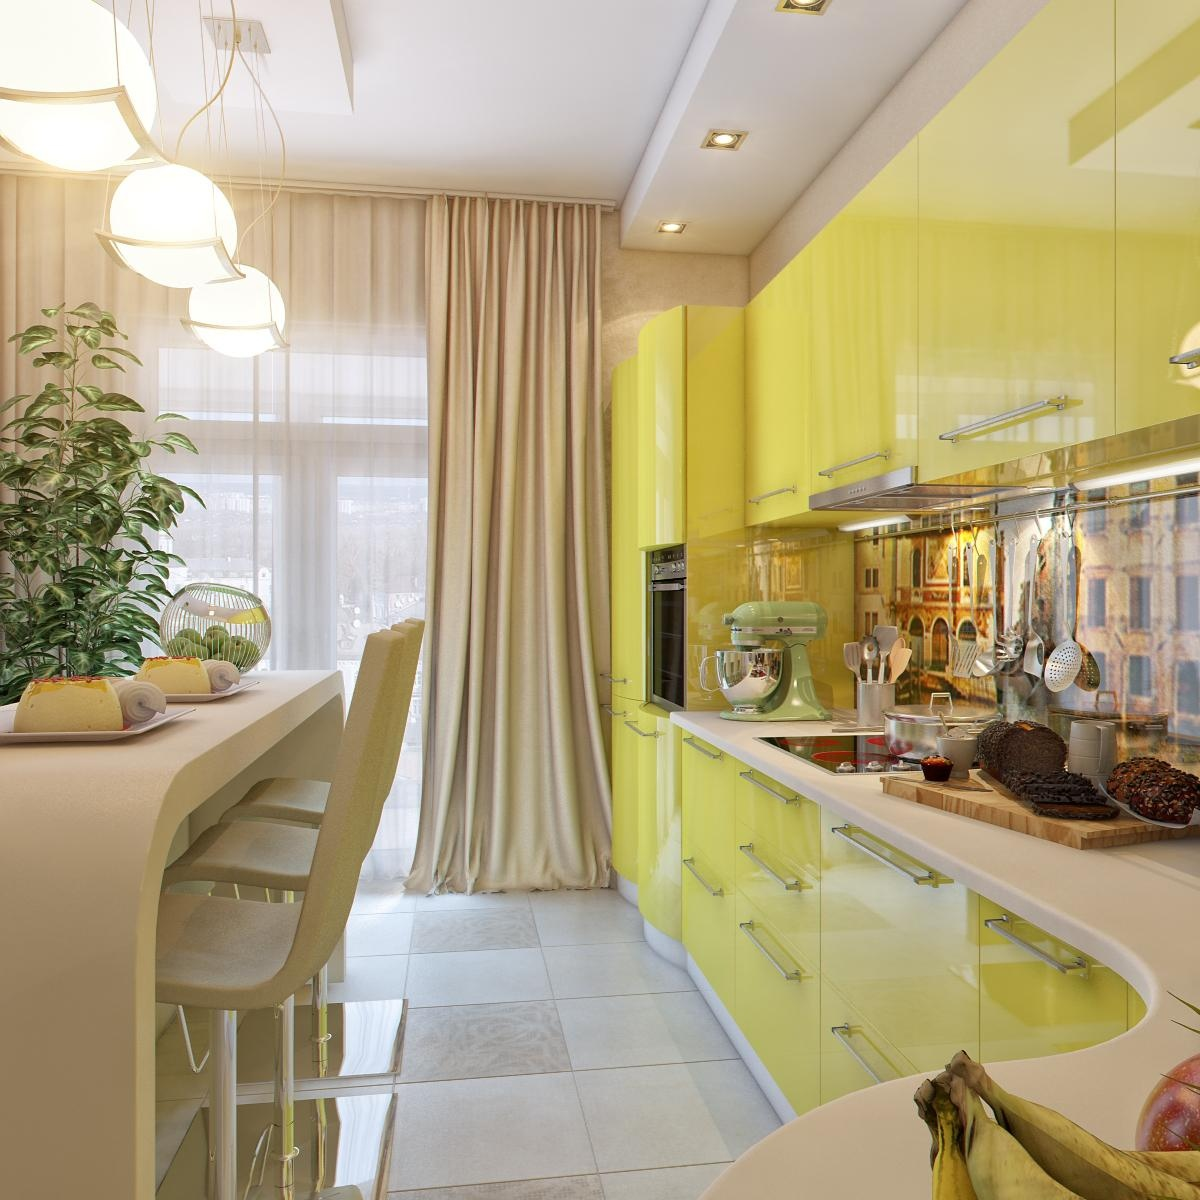 Yellow white kitchen dining space interior design ideas for Small kitchen dining ideas